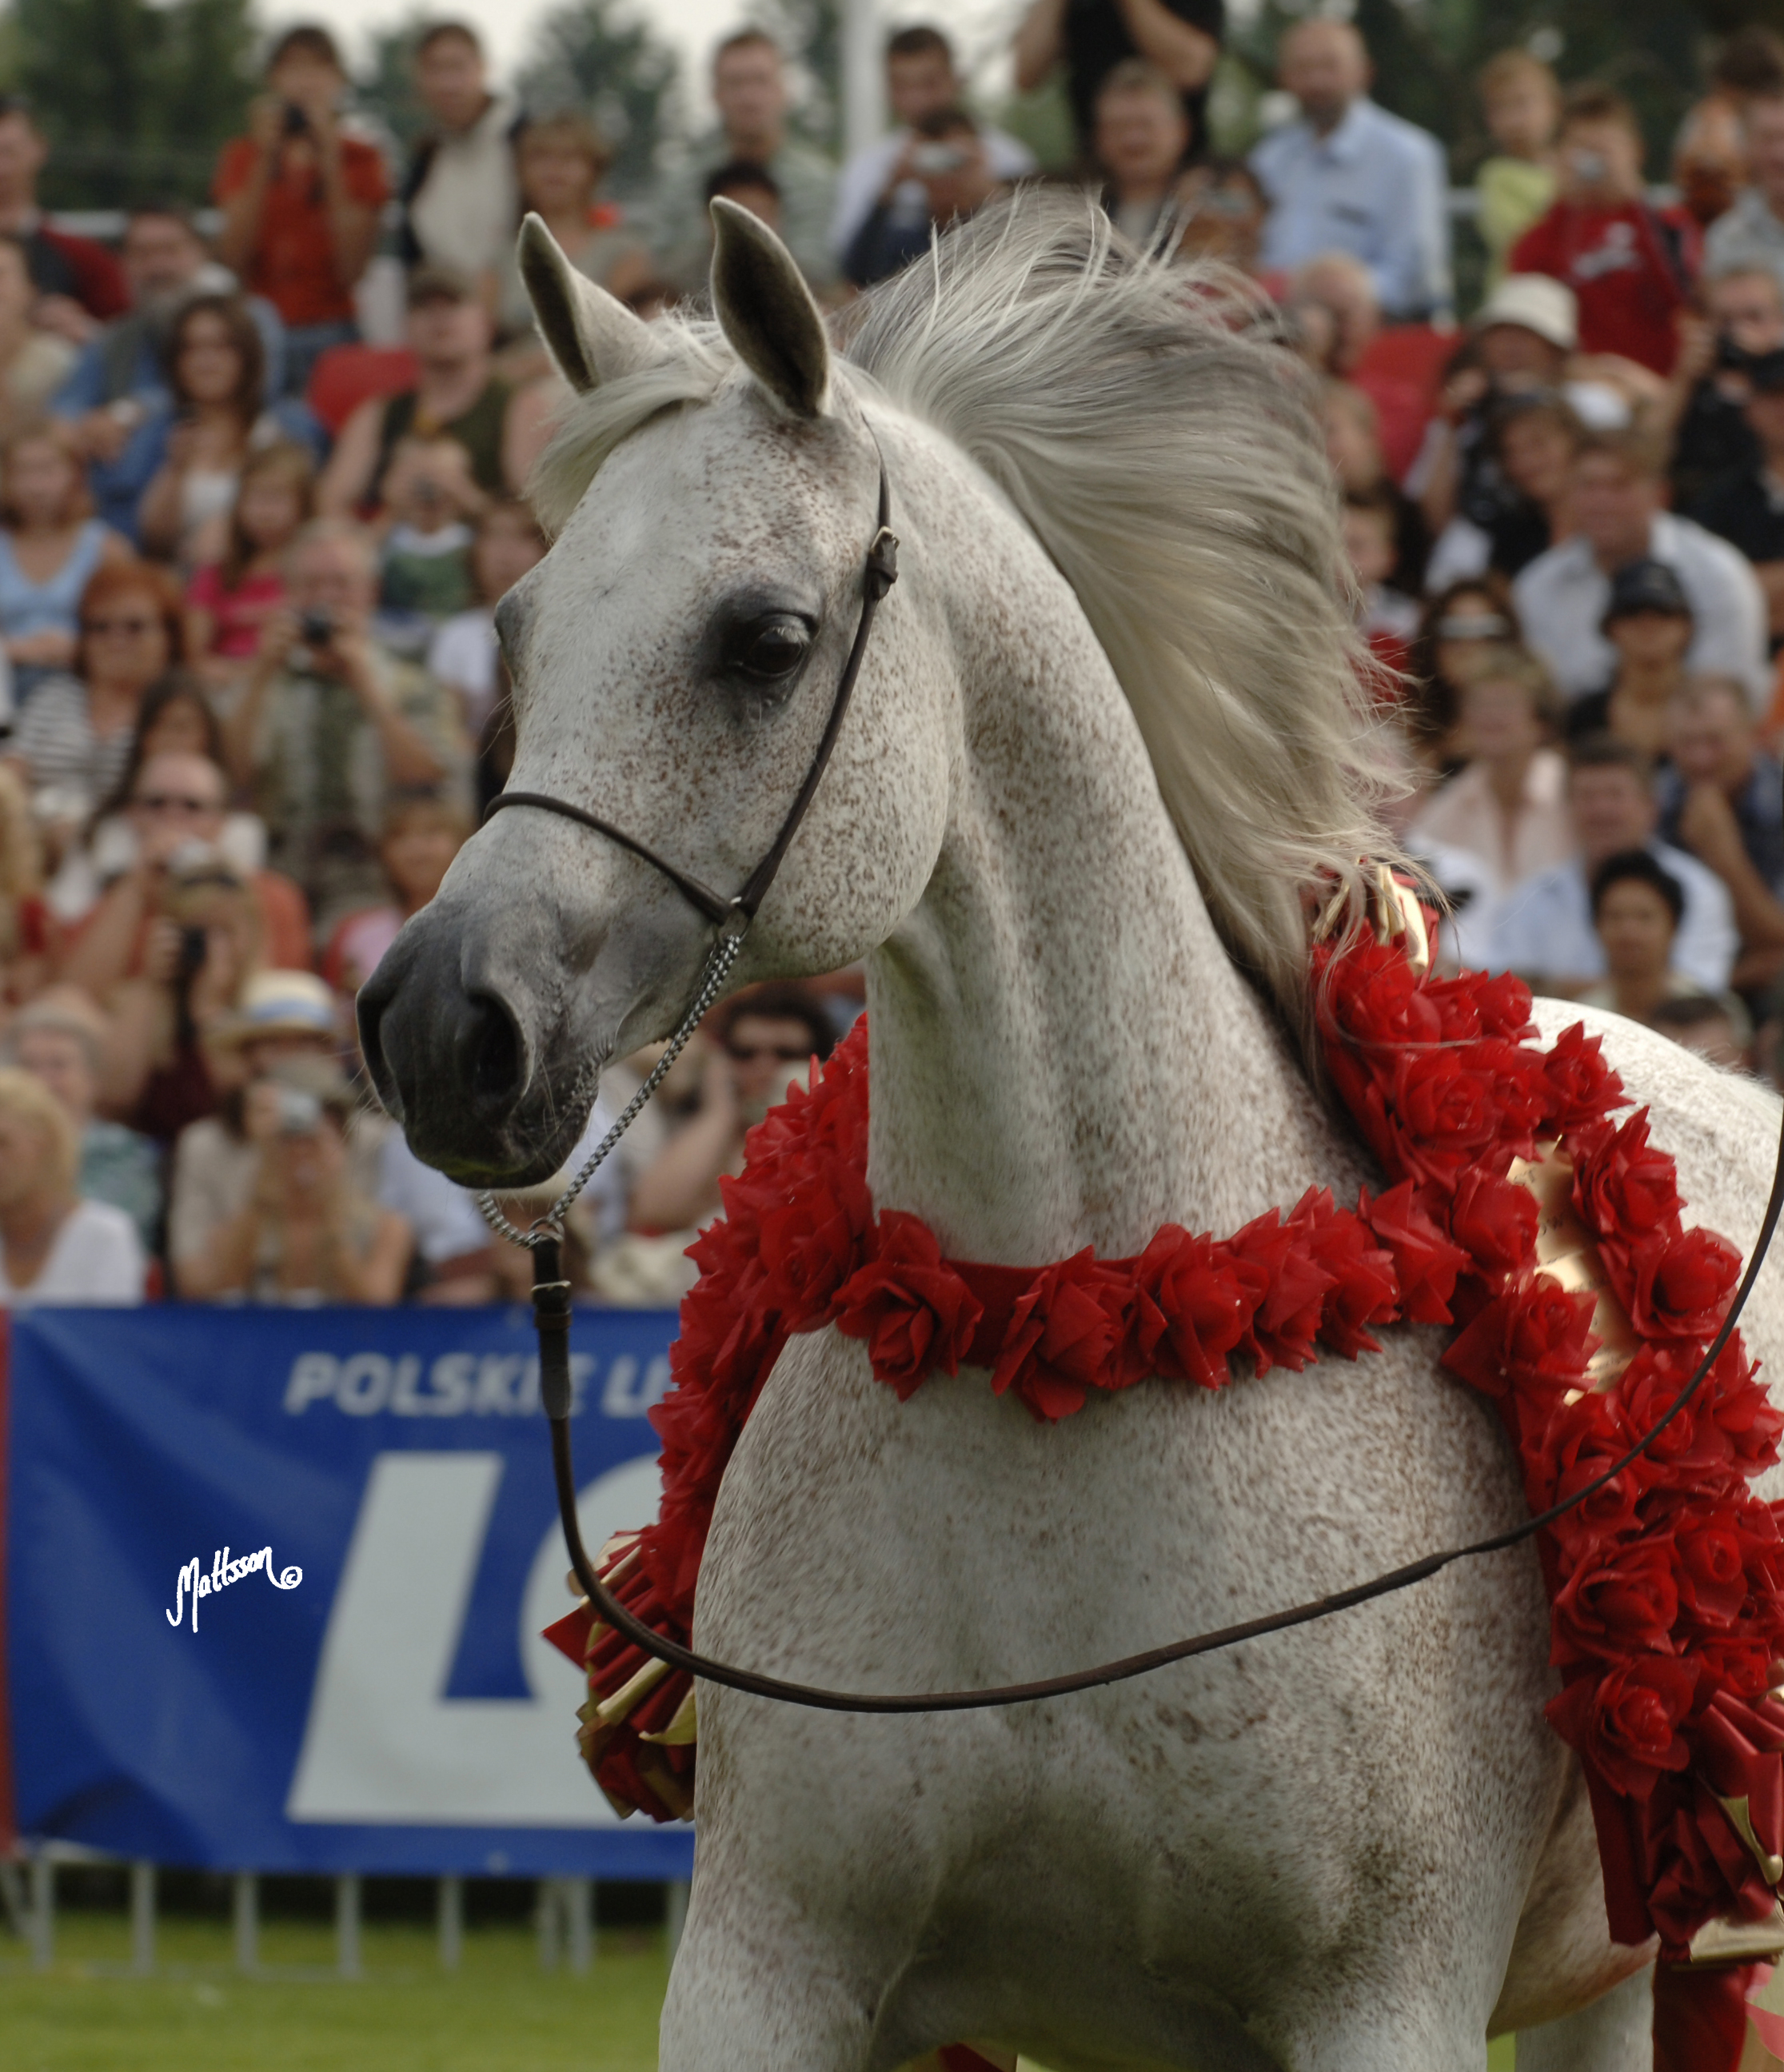 Gaskonia Polish National Champion Mare and Best in Show 2006